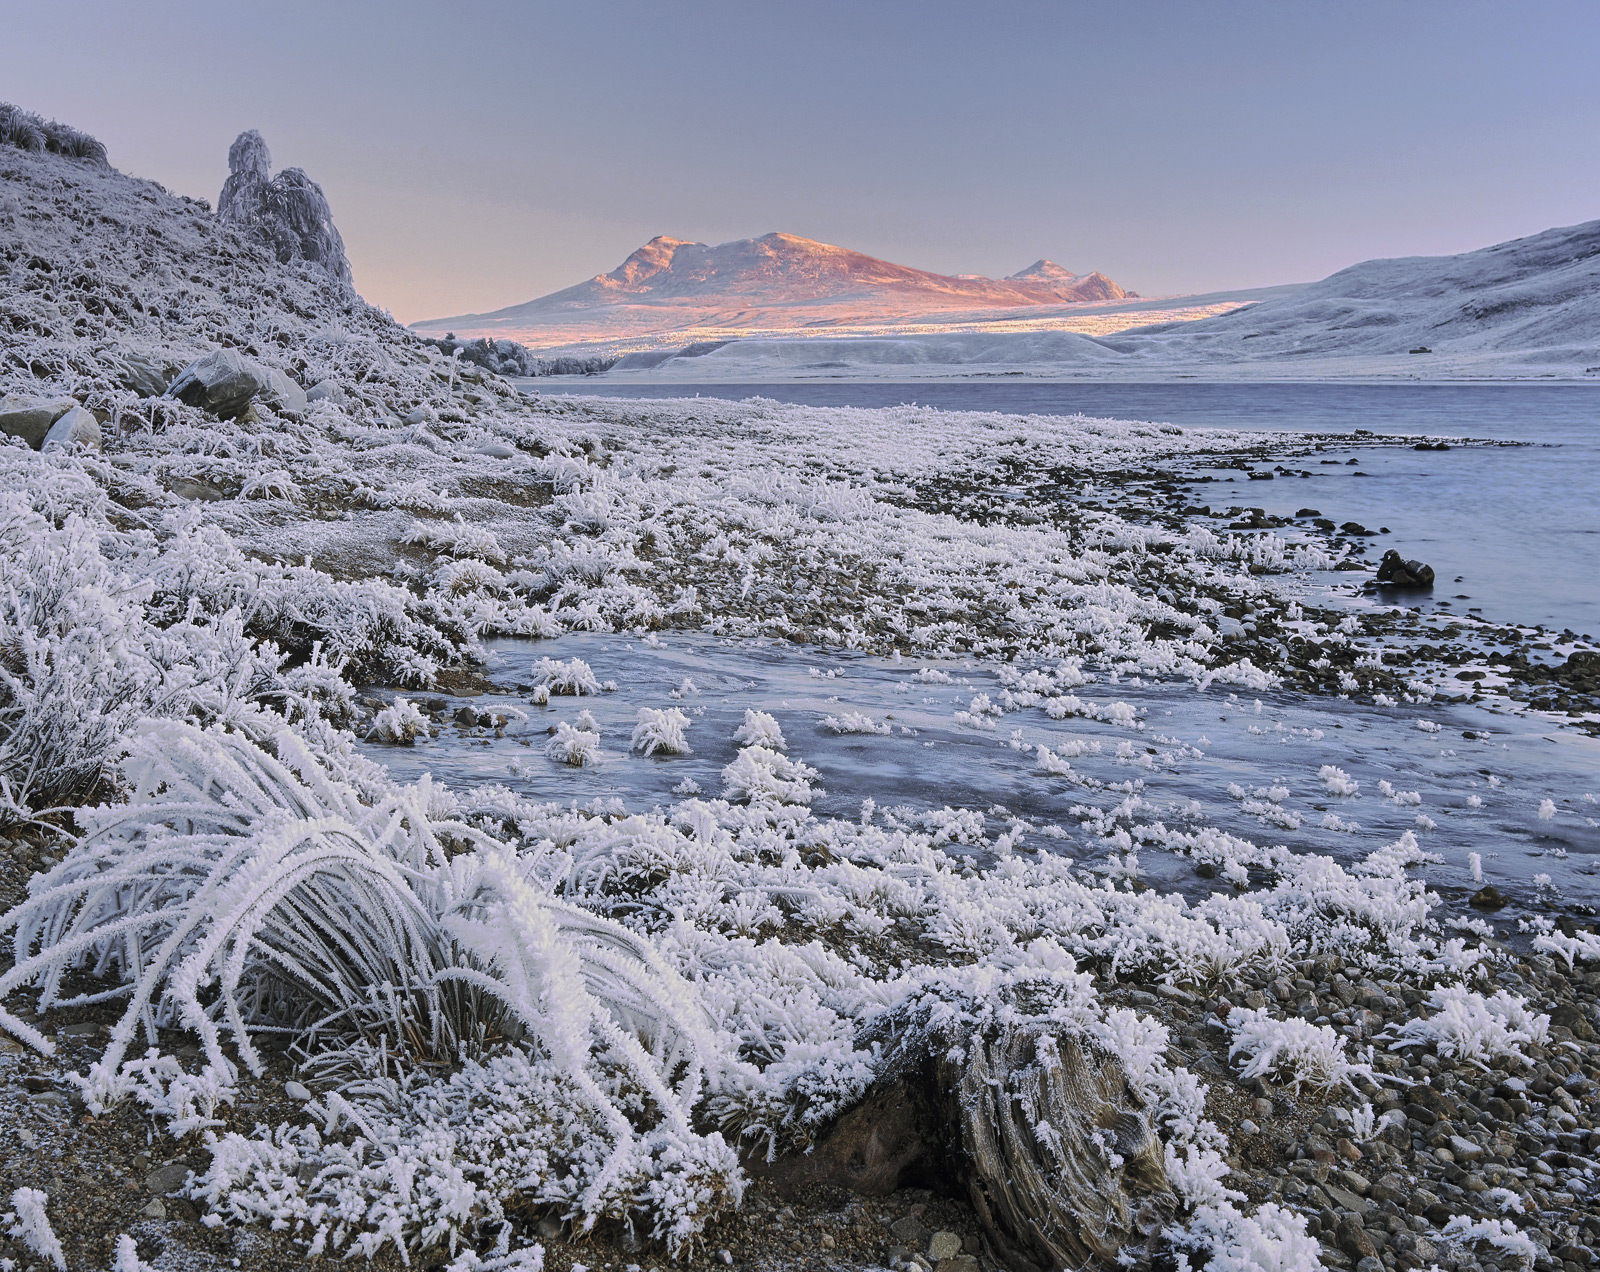 It was a ridiculously cold dry morning by the edge of Loch a Chroisg near Achnasheen. A stream had turned to solid ice...